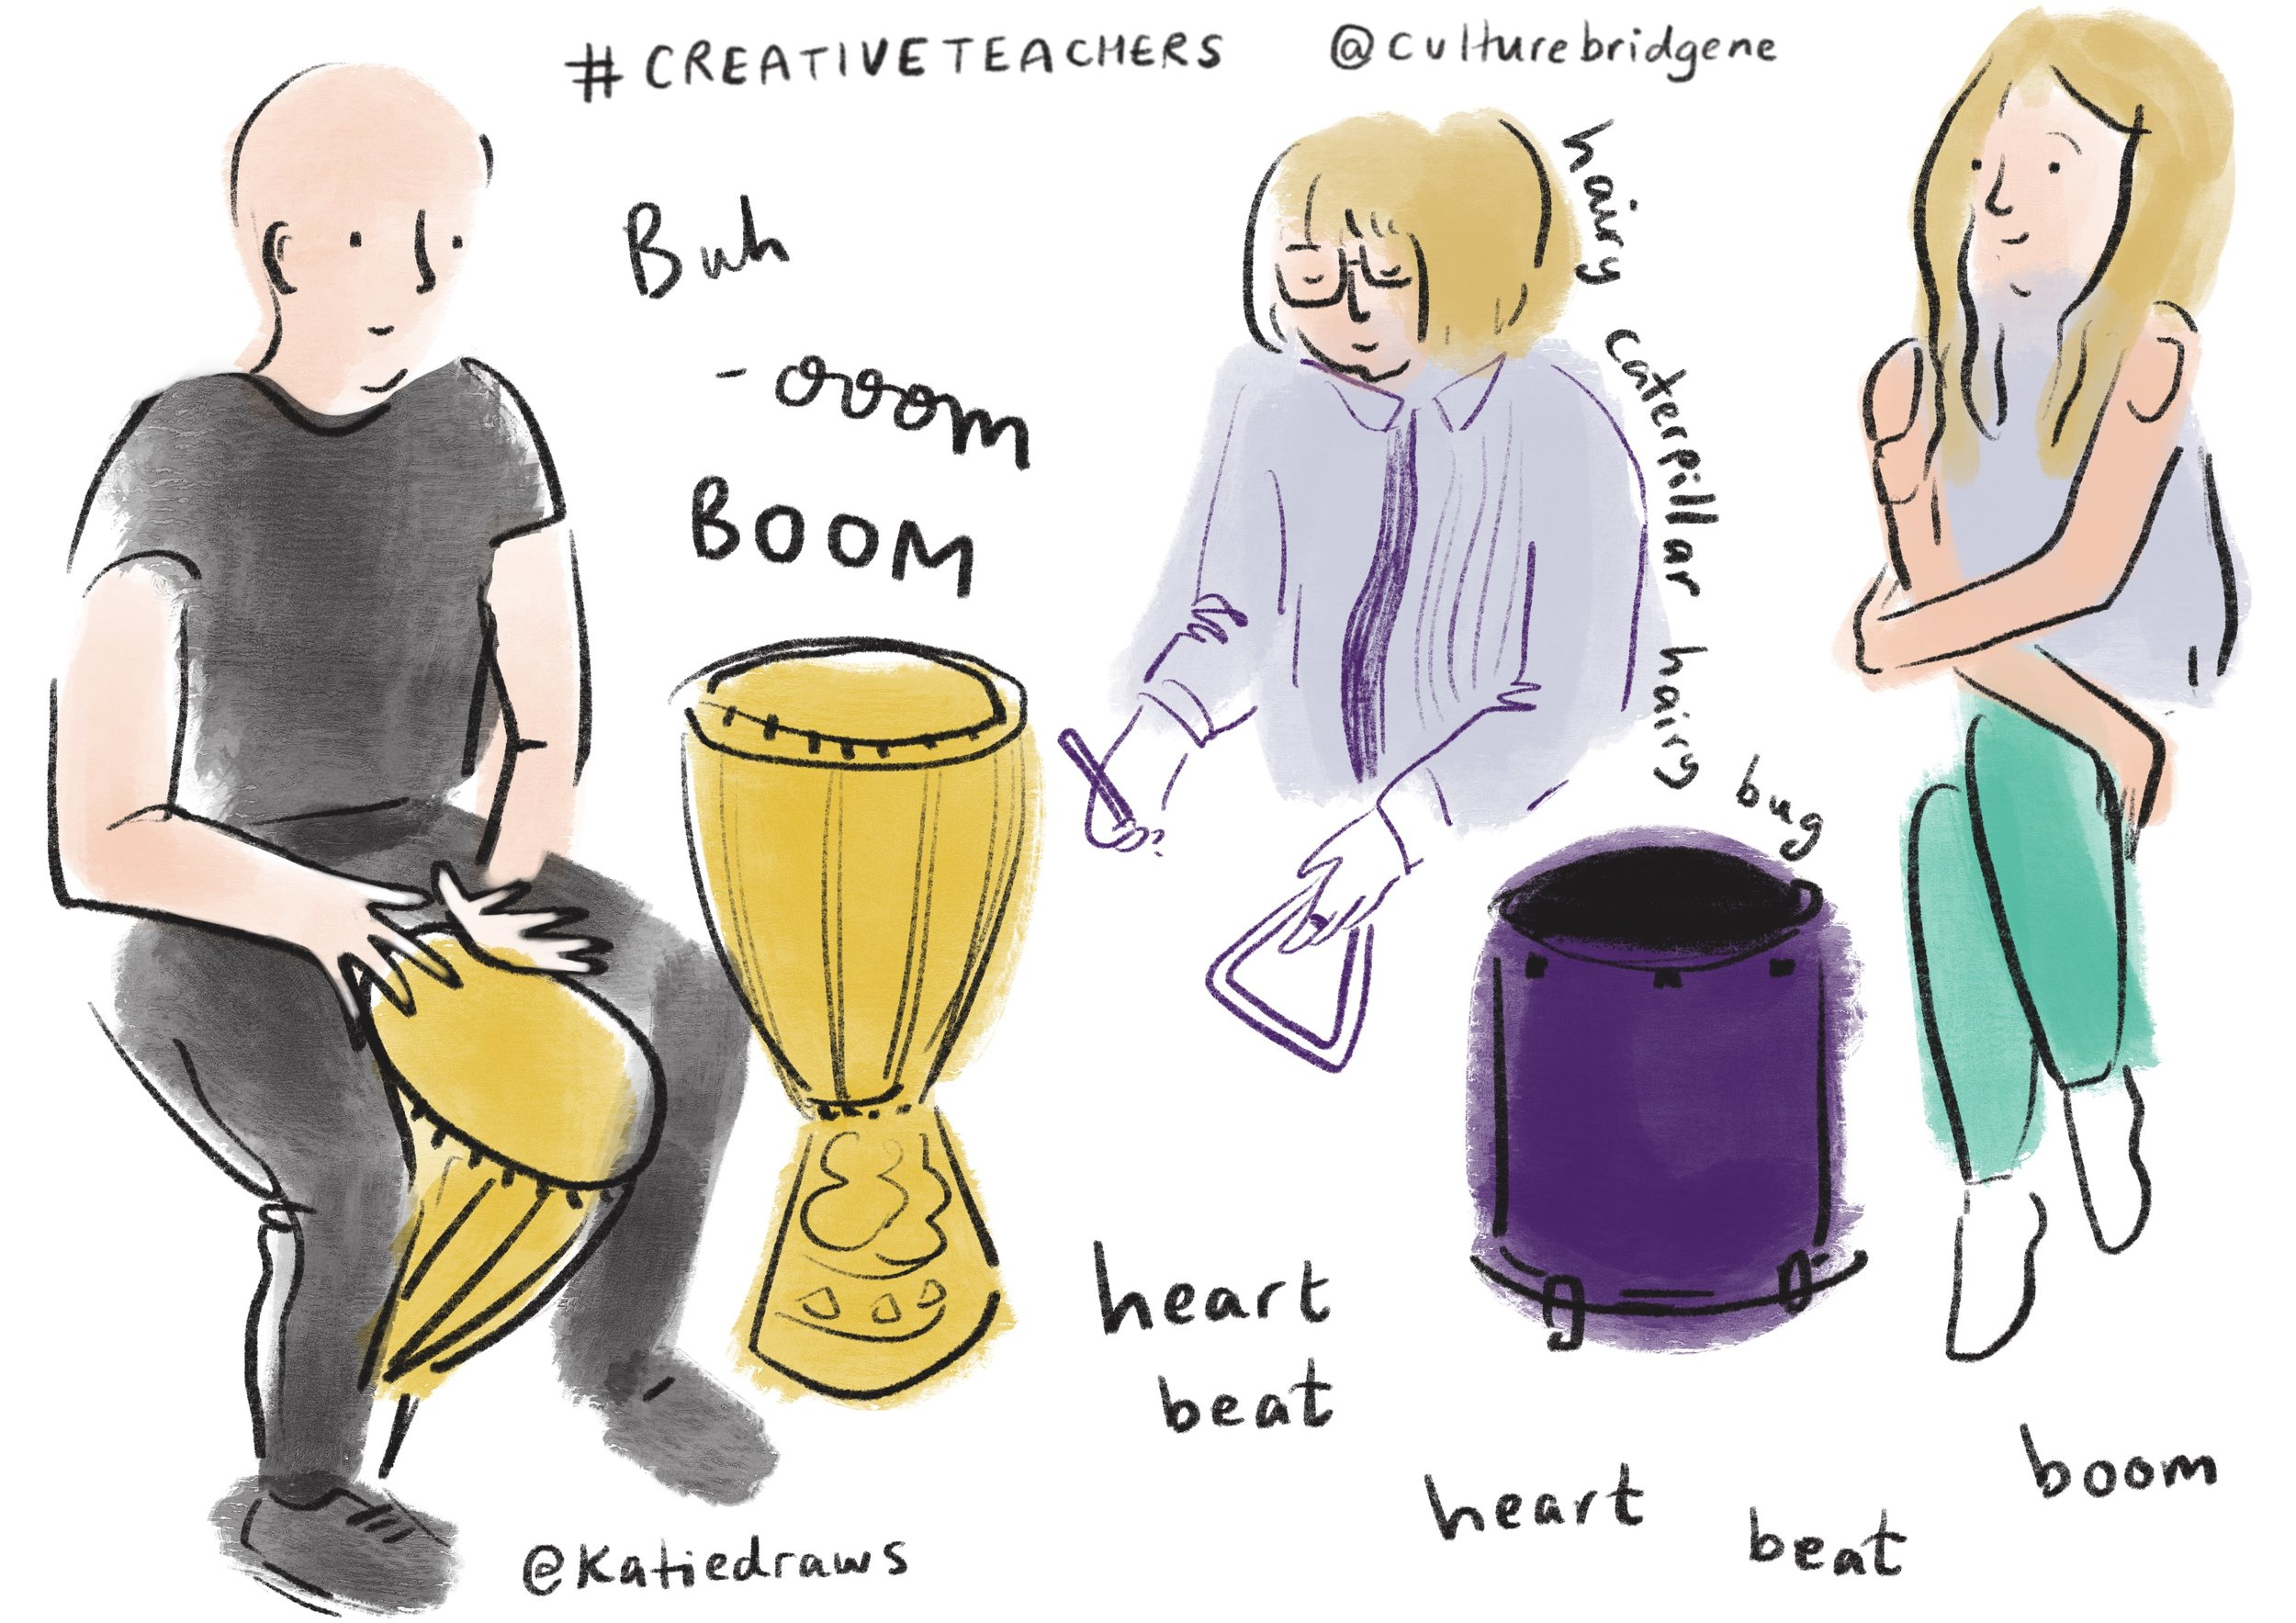 Big Creative Teachers Event - live event illustrator UK.jpg